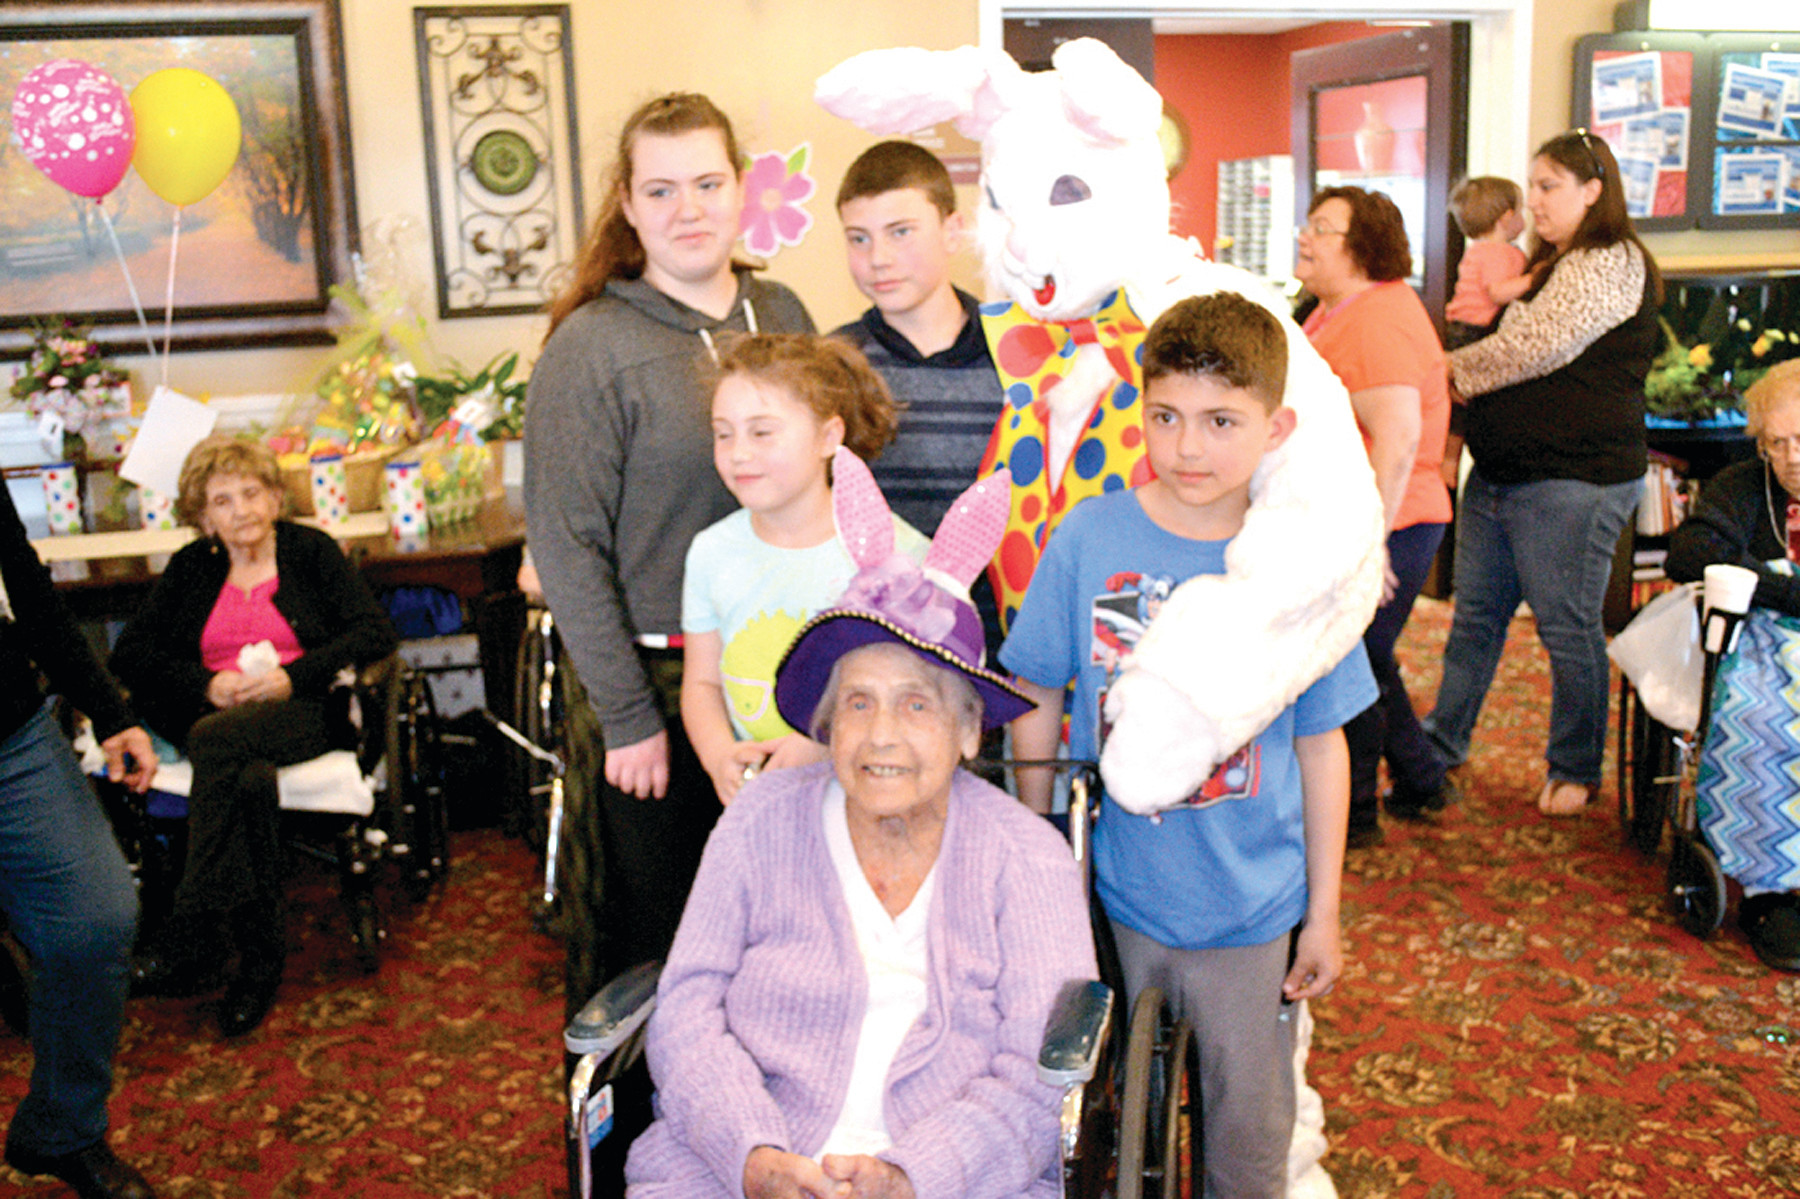 FAMILY CELEBRATION: 98-year-old Regina Parenteau was joined by her family during last Friday's Easter extravaganza at Cherry Hill Manor.